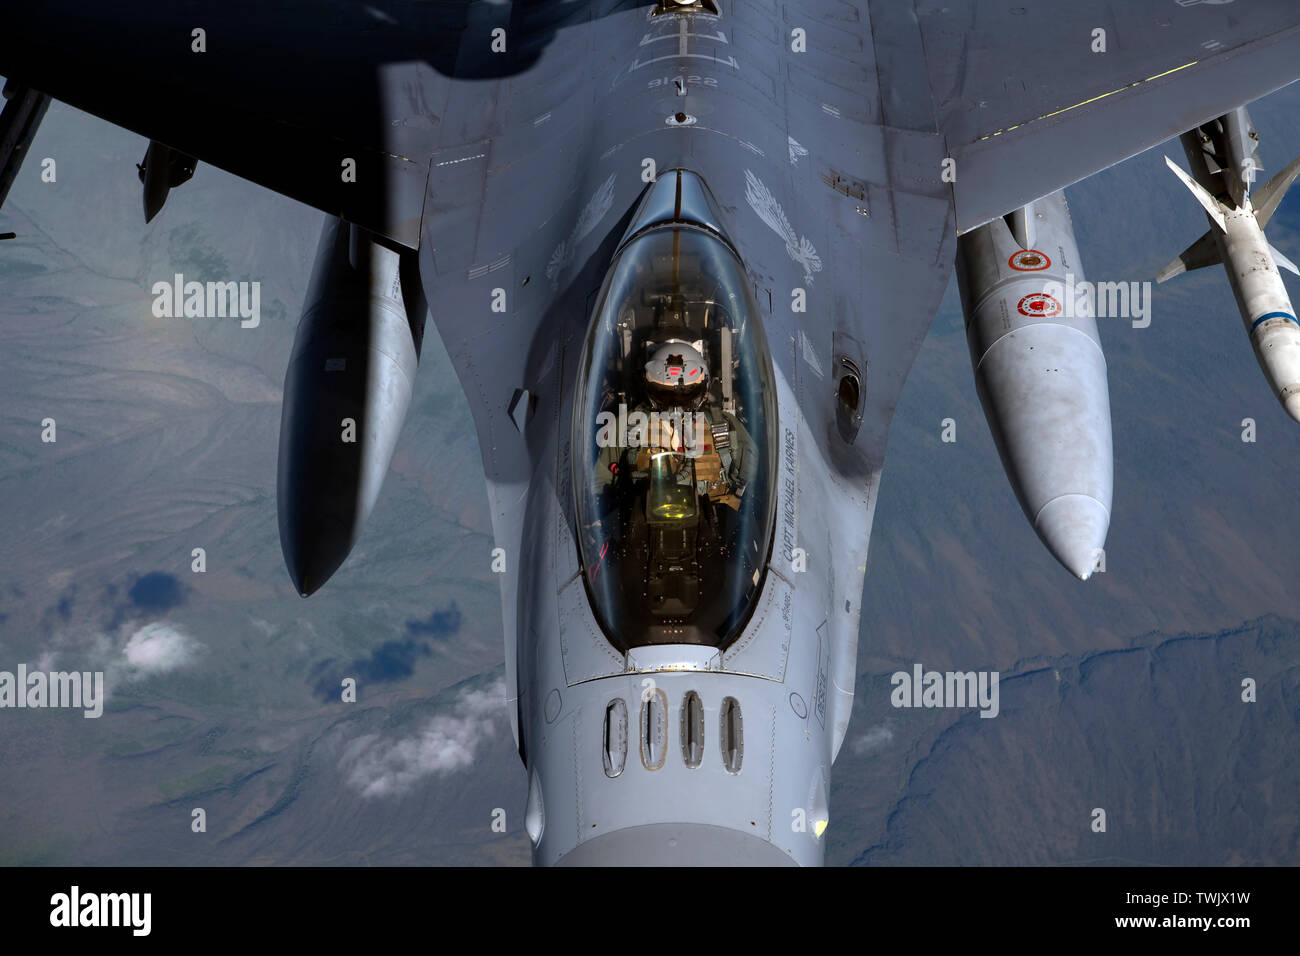 A U.S. Air Force F-16 Fighting Falcon pilot from the 13th Fighter Squadron, Misawa Air Base, Japan, receives fuel from a KC-135 Stratotanker during RED FLAG-Alaska 19-2 near Eielson Air Force Base, Alaska, June 18, 2019. RF-A is an annual U.S. Pacific Air Forces field training exercise for U.S. and international partners to enhance combat readiness of participating forces. The KC-135 is assigned to the 909th Air Refueling Squadron, Kadena Air Base, Japan. Airmen from Misawa and Kadena Air Base joined more than 2000 participants for the Pacific Air Forces-sponsored exercise, which aims to impro - Stock Image